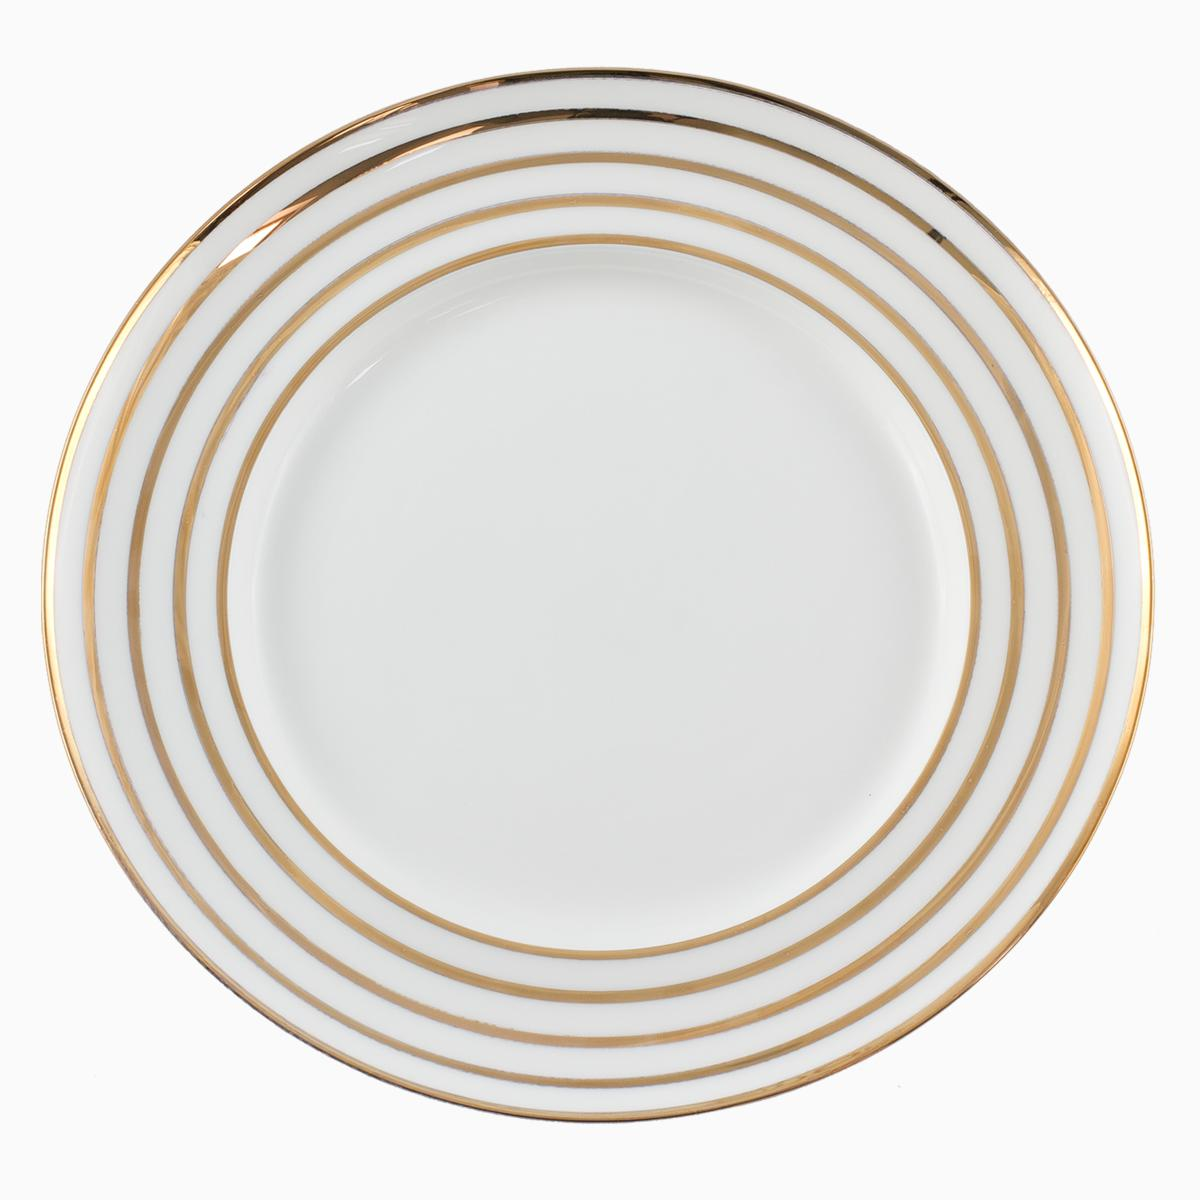 Plate Flat with stripes